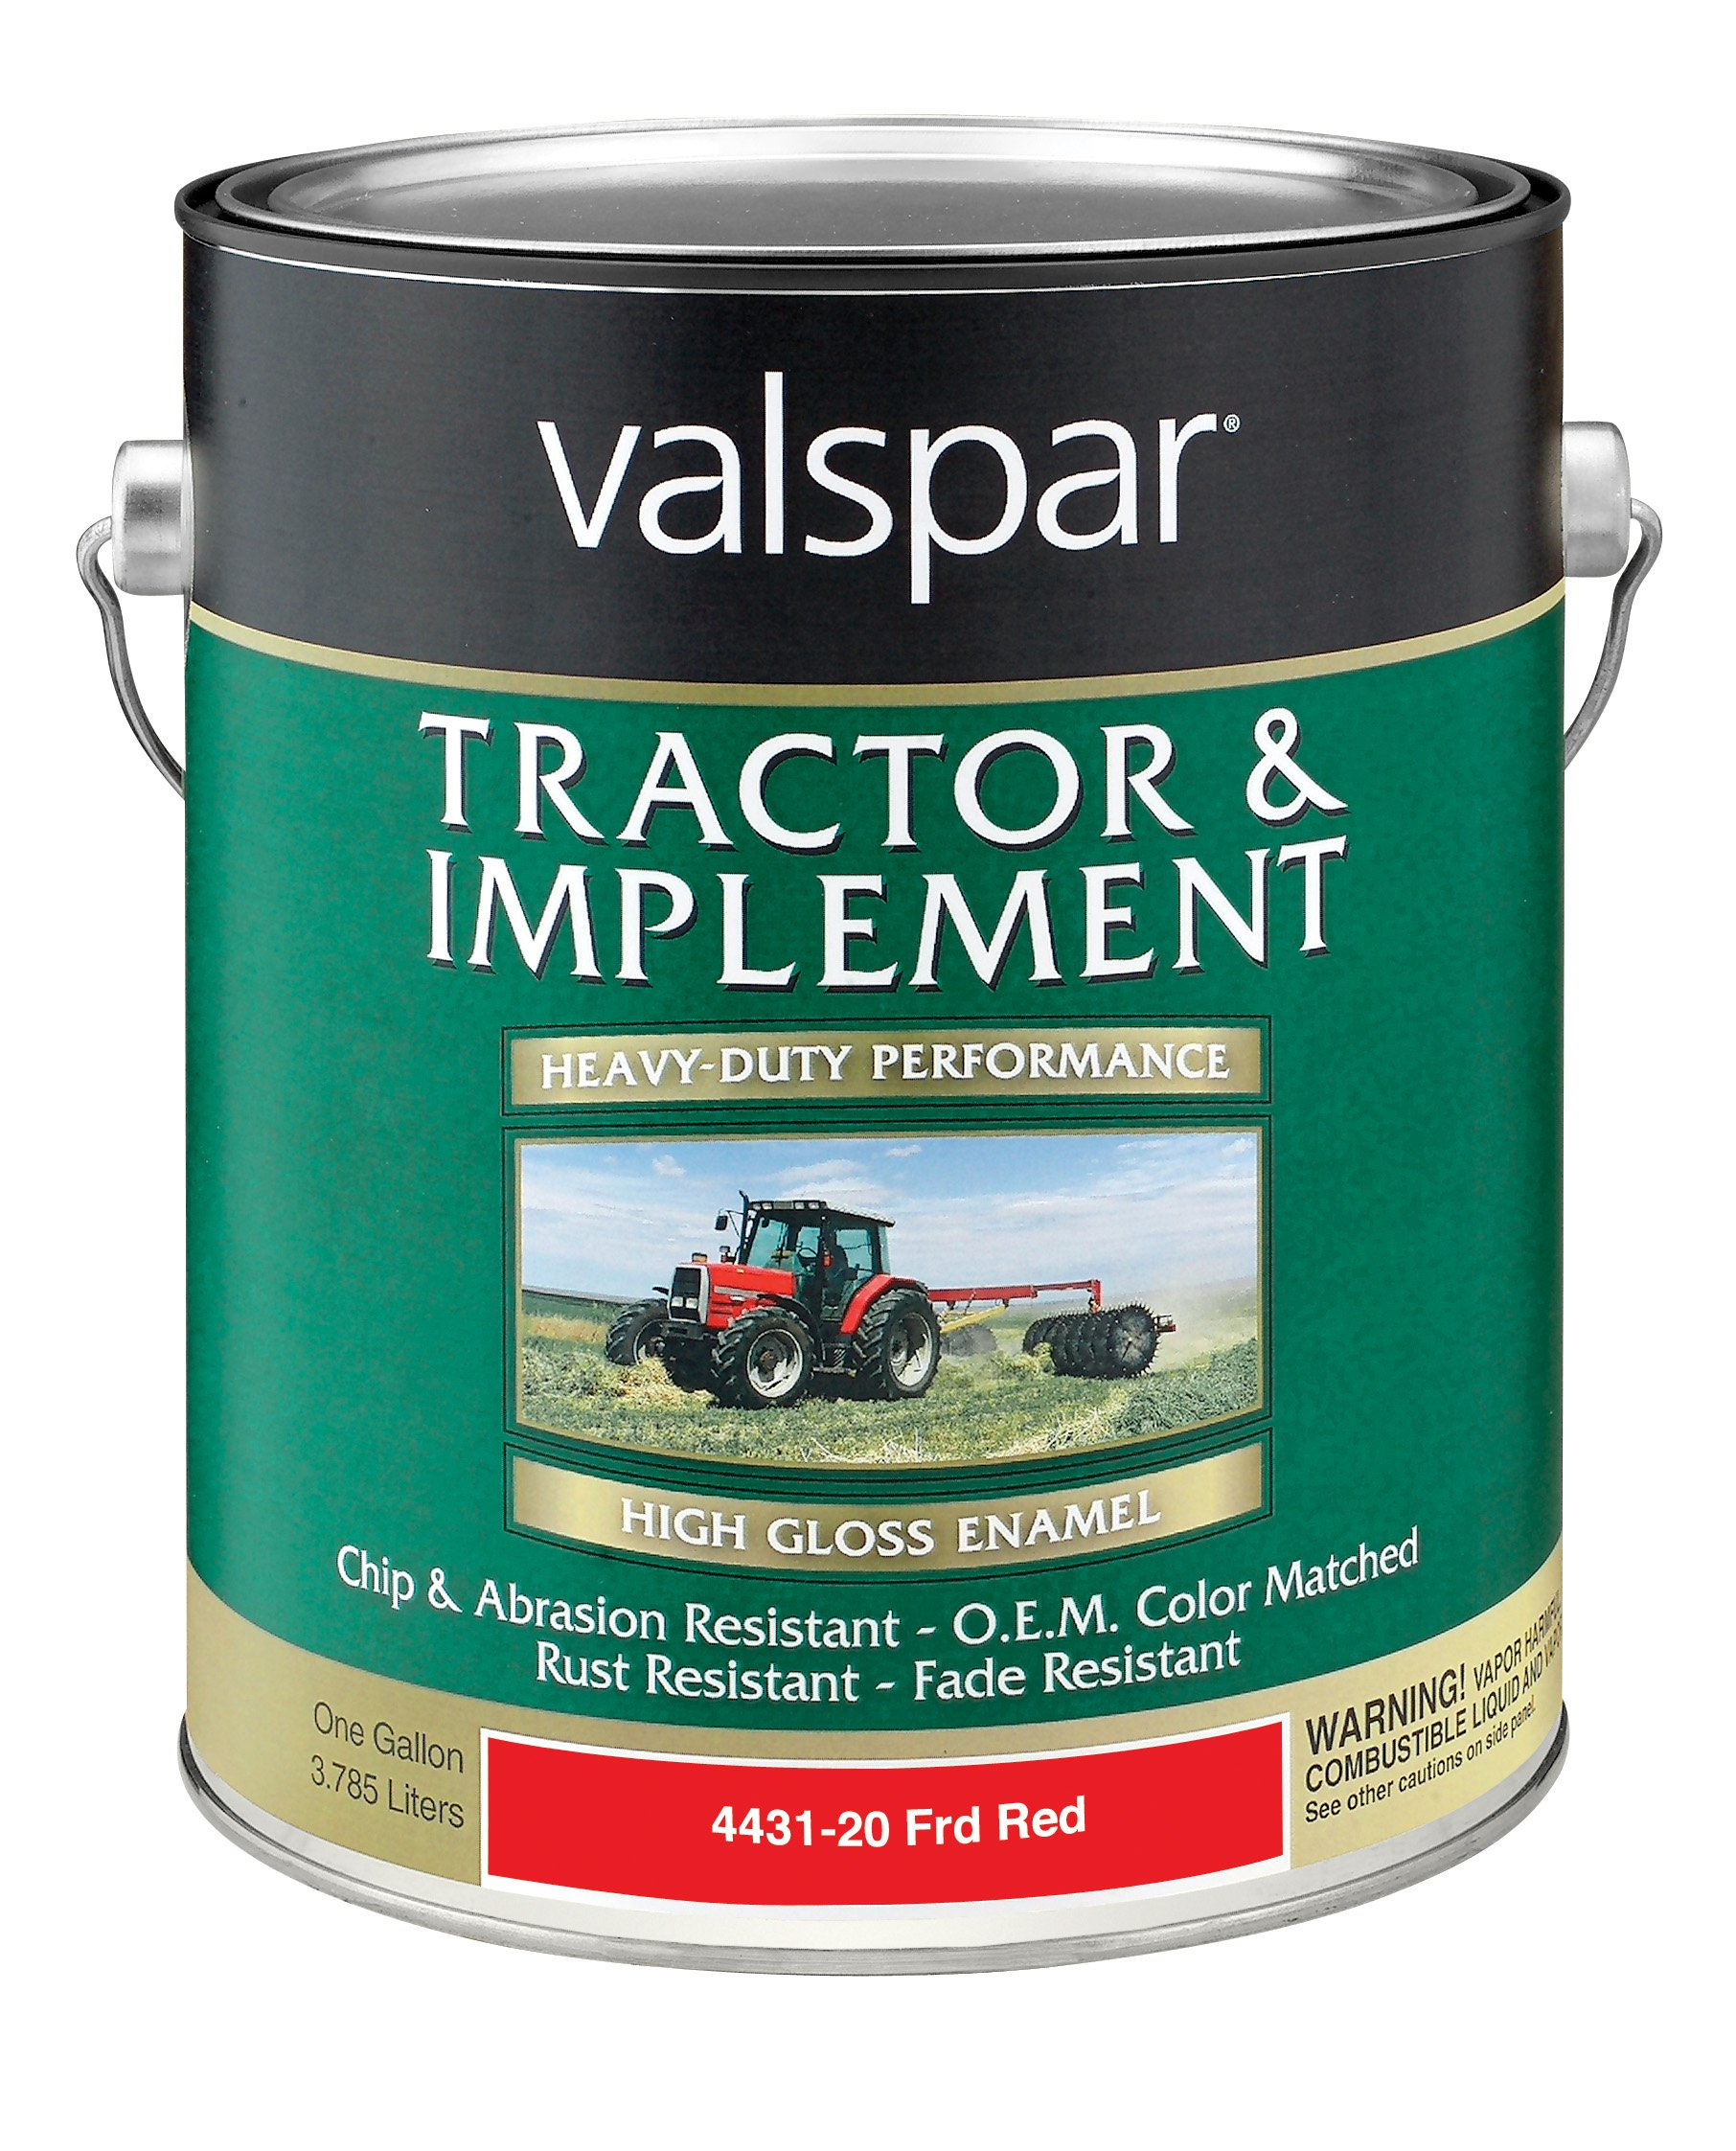 Valspar 4431-20 Ford Red Tractor and Implement Paint - 1 Gallon